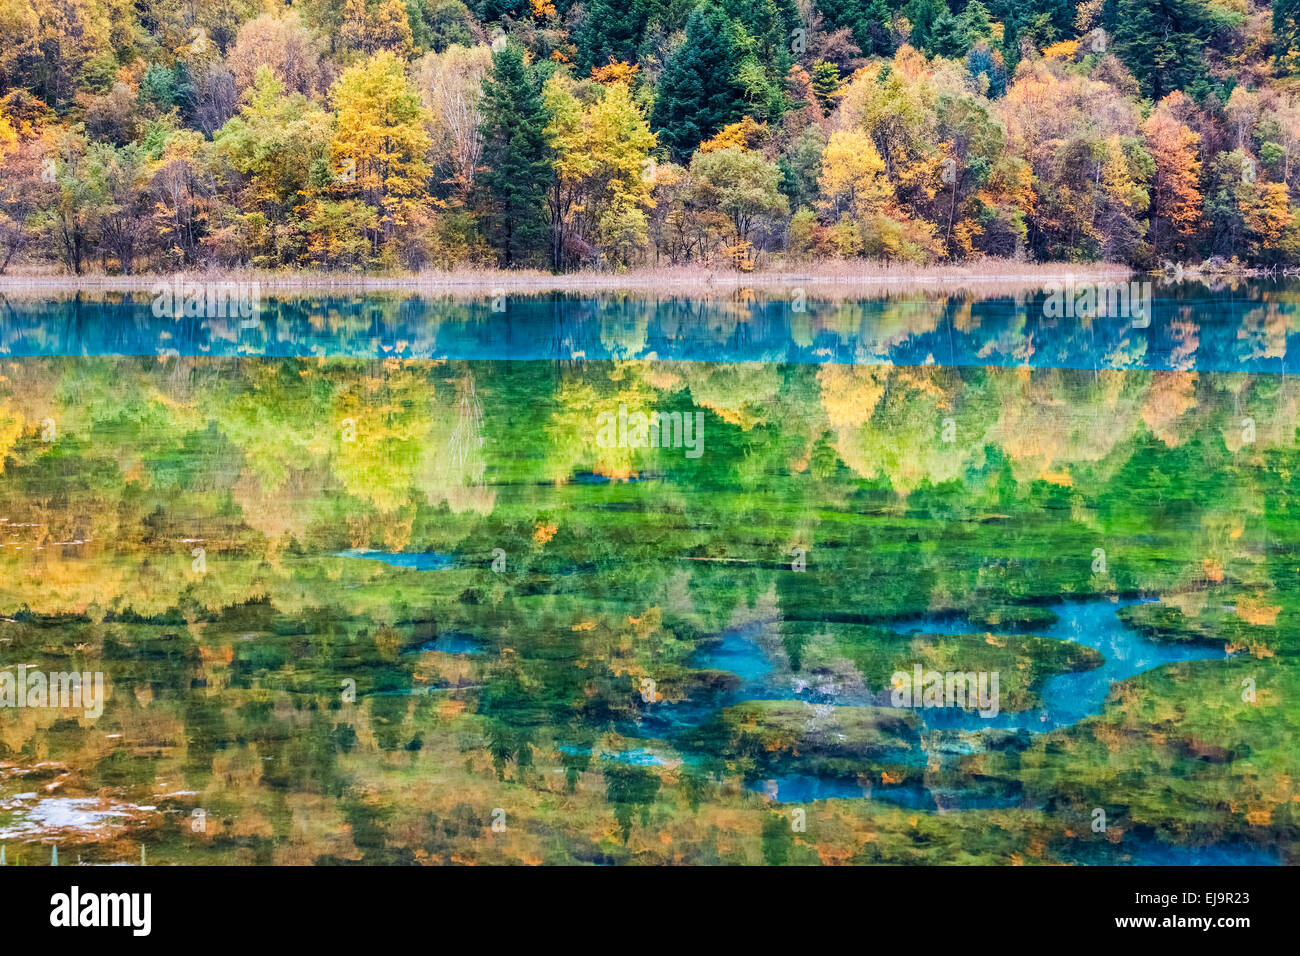 autumn fairy tale landscapes in jiuzhaigou - Stock Image